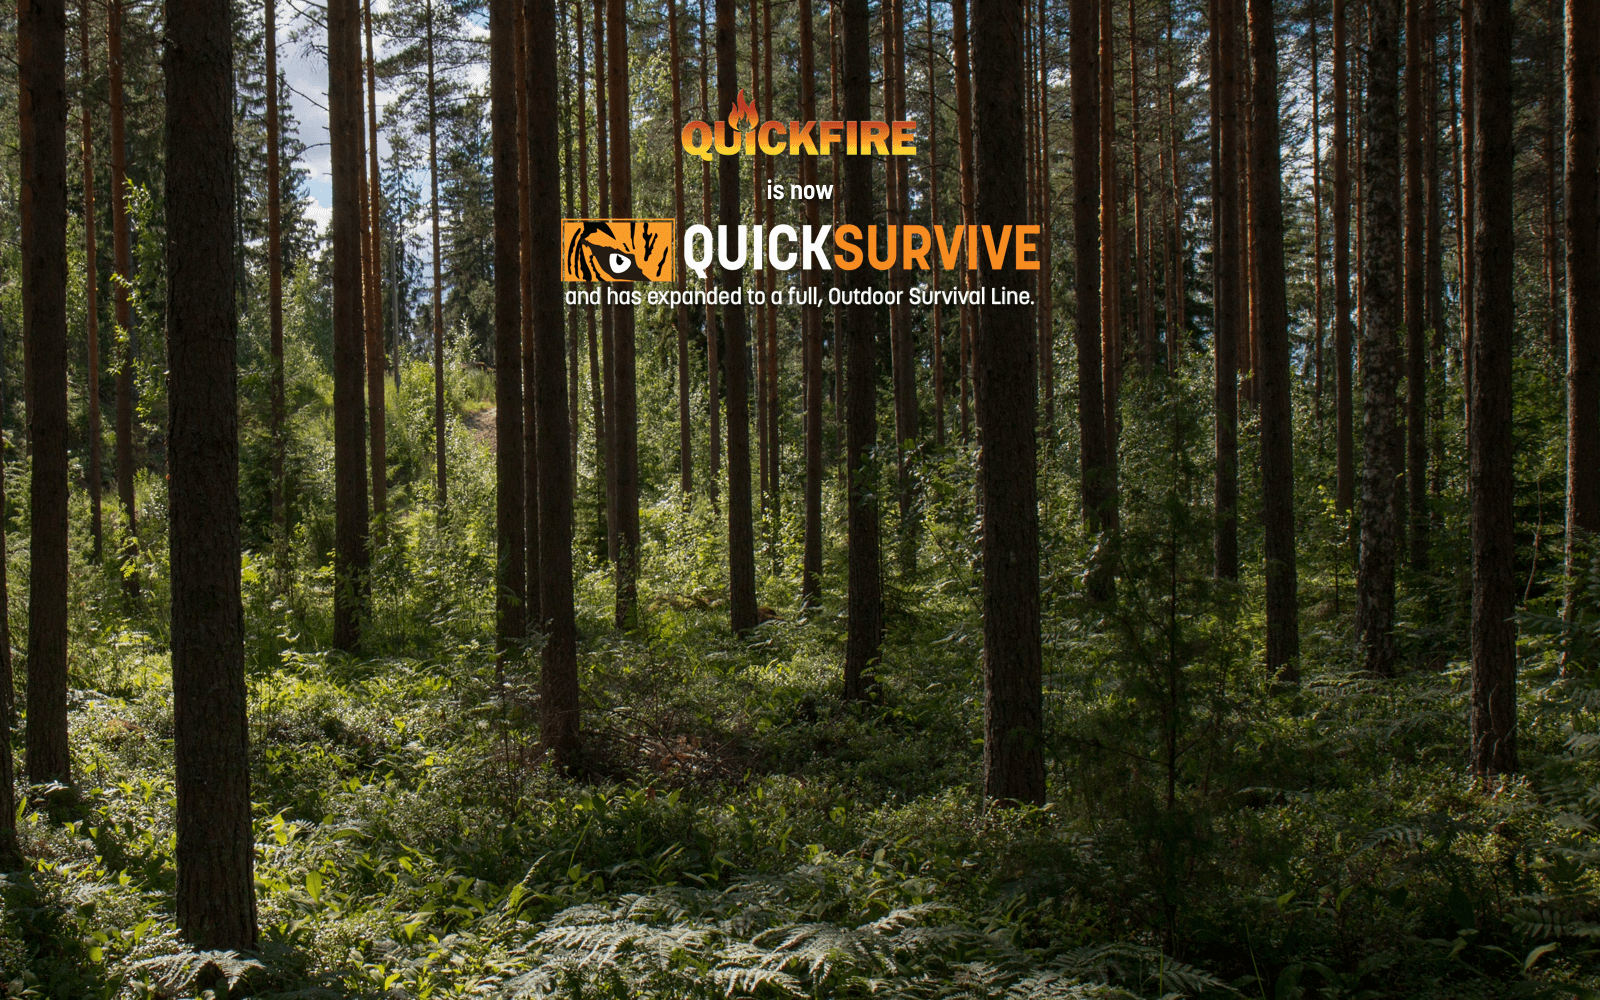 QuickSurvive Fire Starters - Formerly Quick Fire - Best Waterproof Fire Starters for Camping Survival Fires and Fireplaces - The Most Versatile Fire Starters in Outdoors Forest and Camping at Campground Campfire